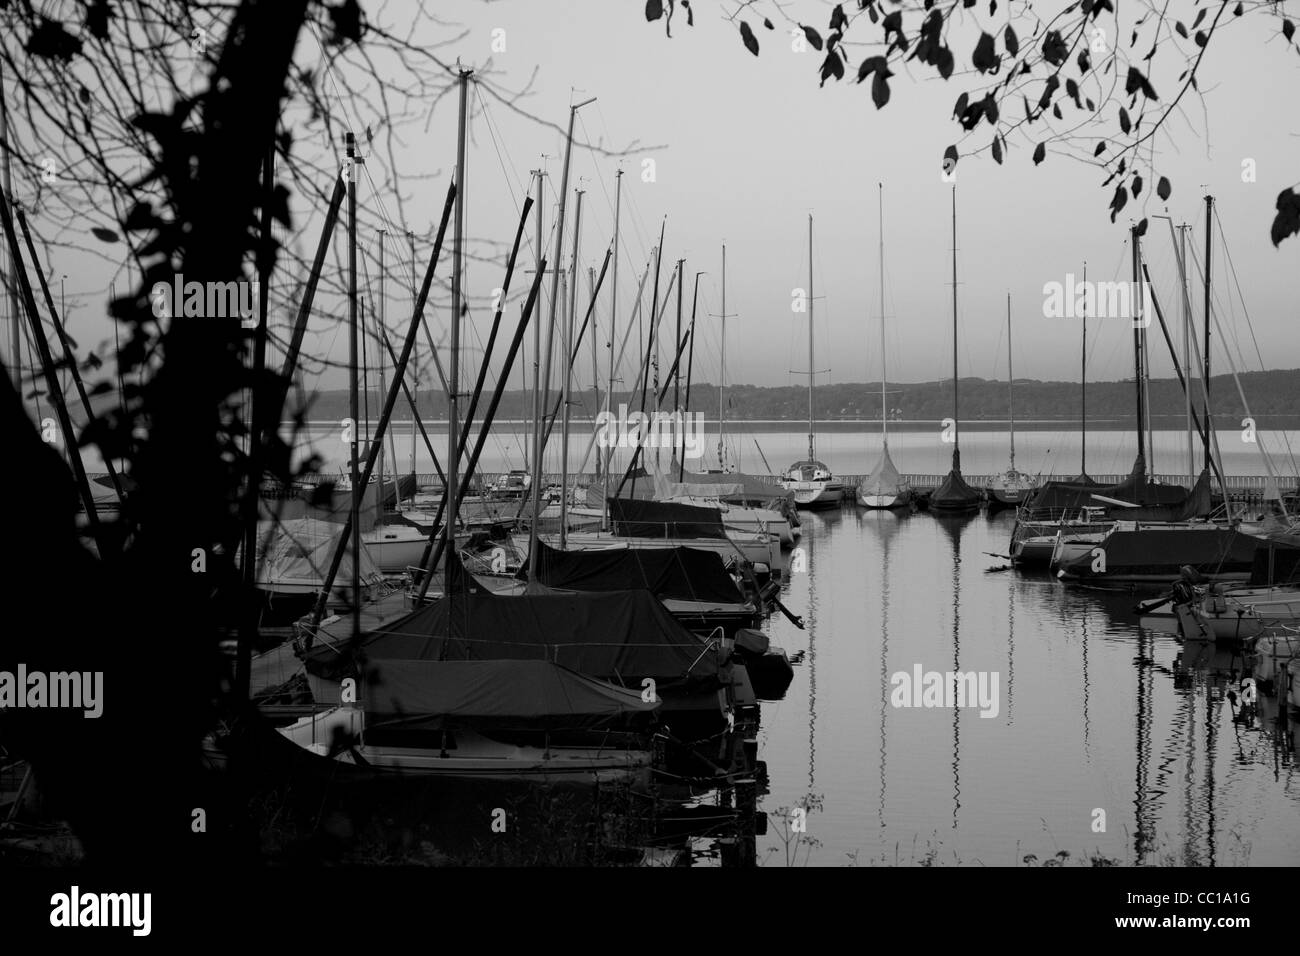 Black and white silhouette photo of a small harbour in the evening on the Starnberger Lake in Bavaria, Germnay. - Stock Image